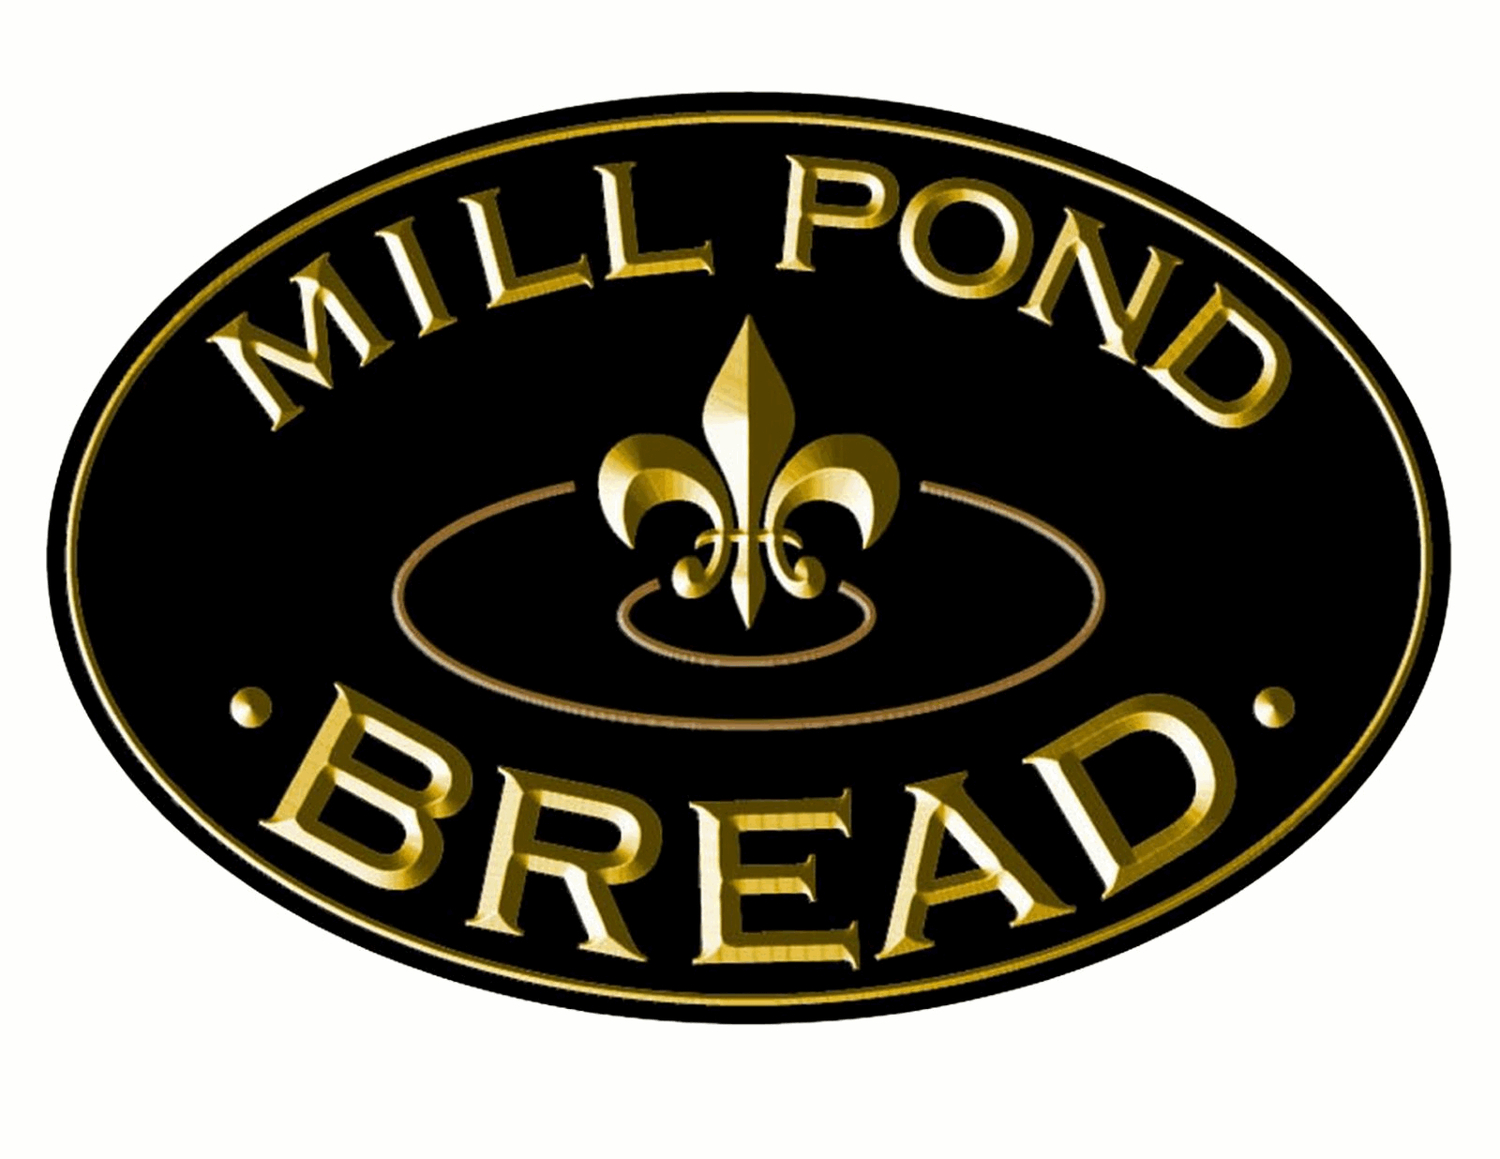 Mill Pond Bread